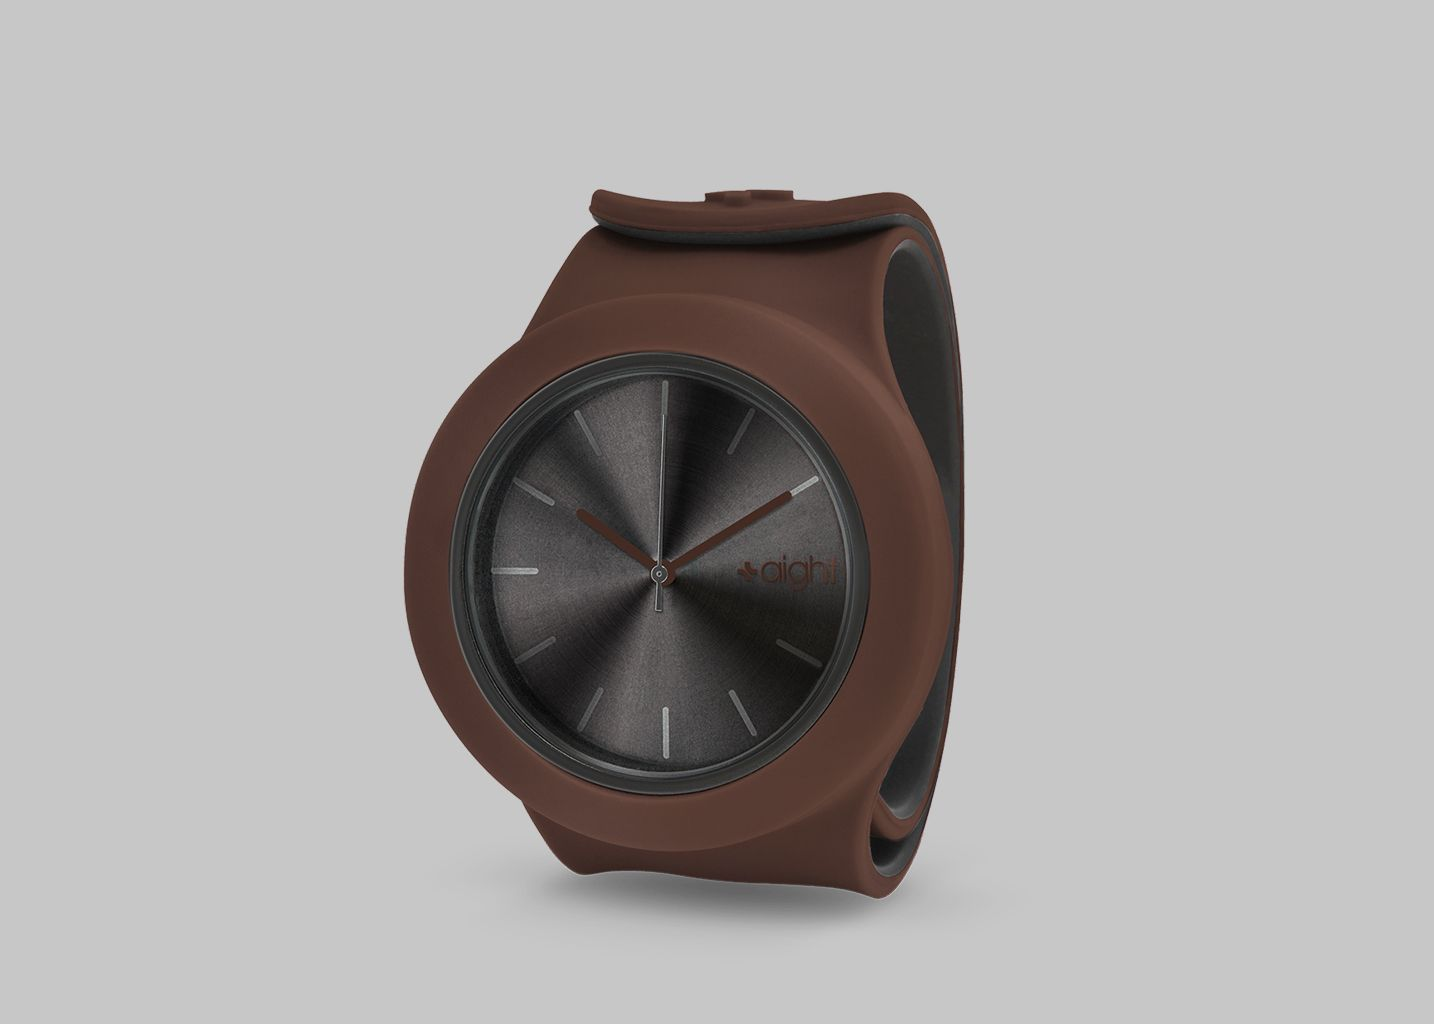 Montre M.Brown - Aight